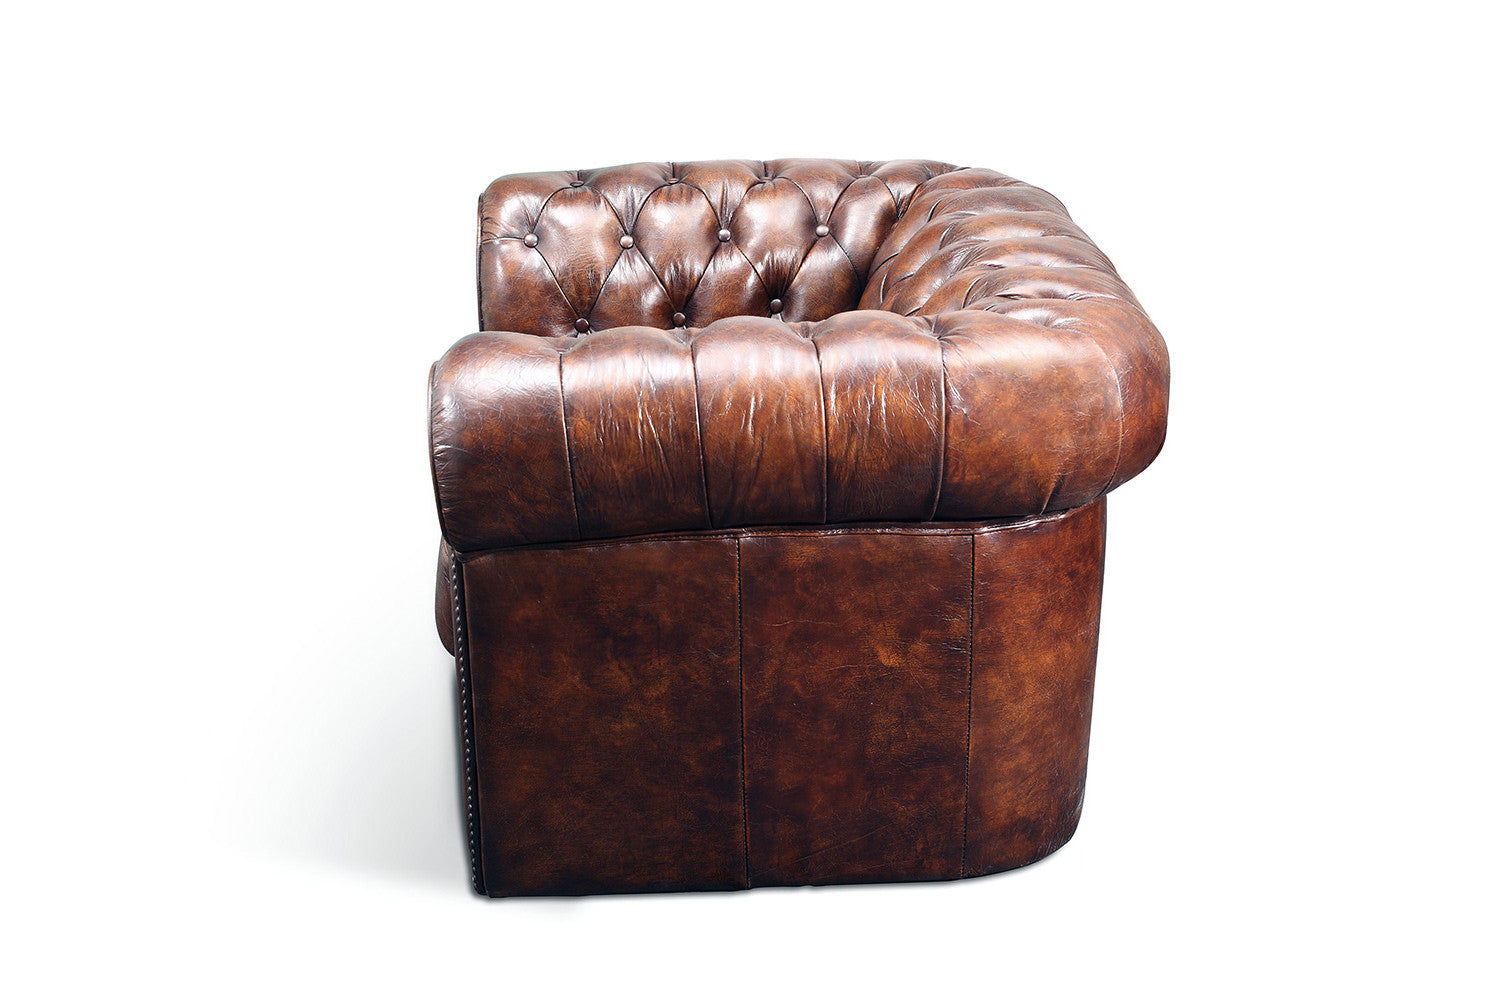 The Original Chesterfield Chair Rose And Moore